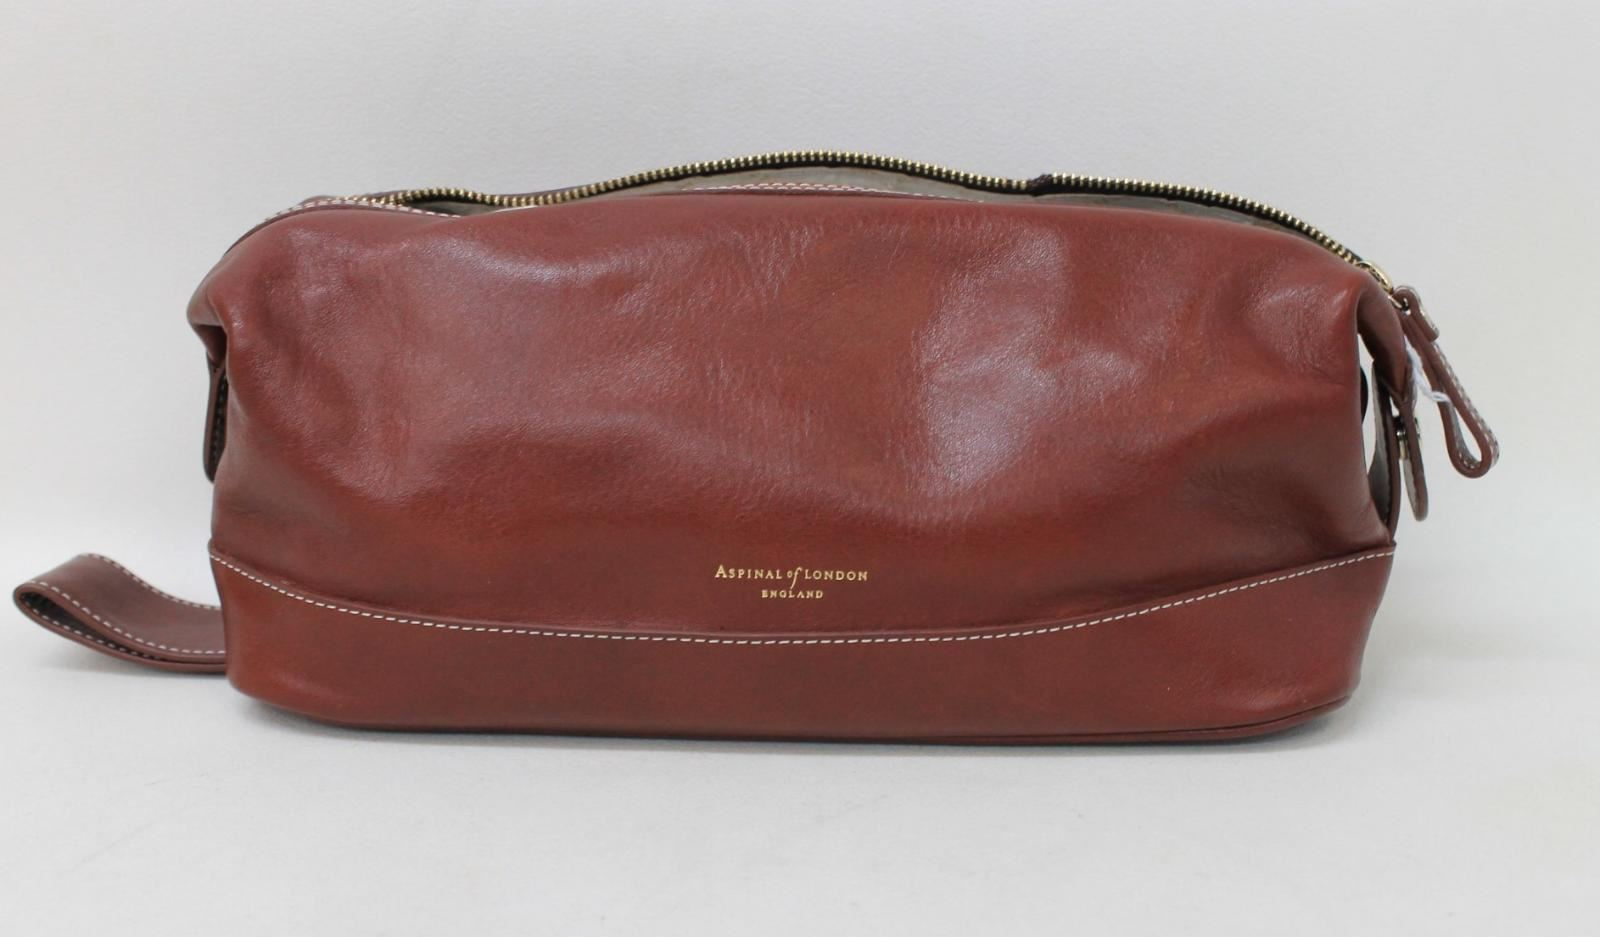 ASPINAL OF LONDON Men's Brown Cognac Smooth Leather Toiletry Wash Bag NEW |  eBay